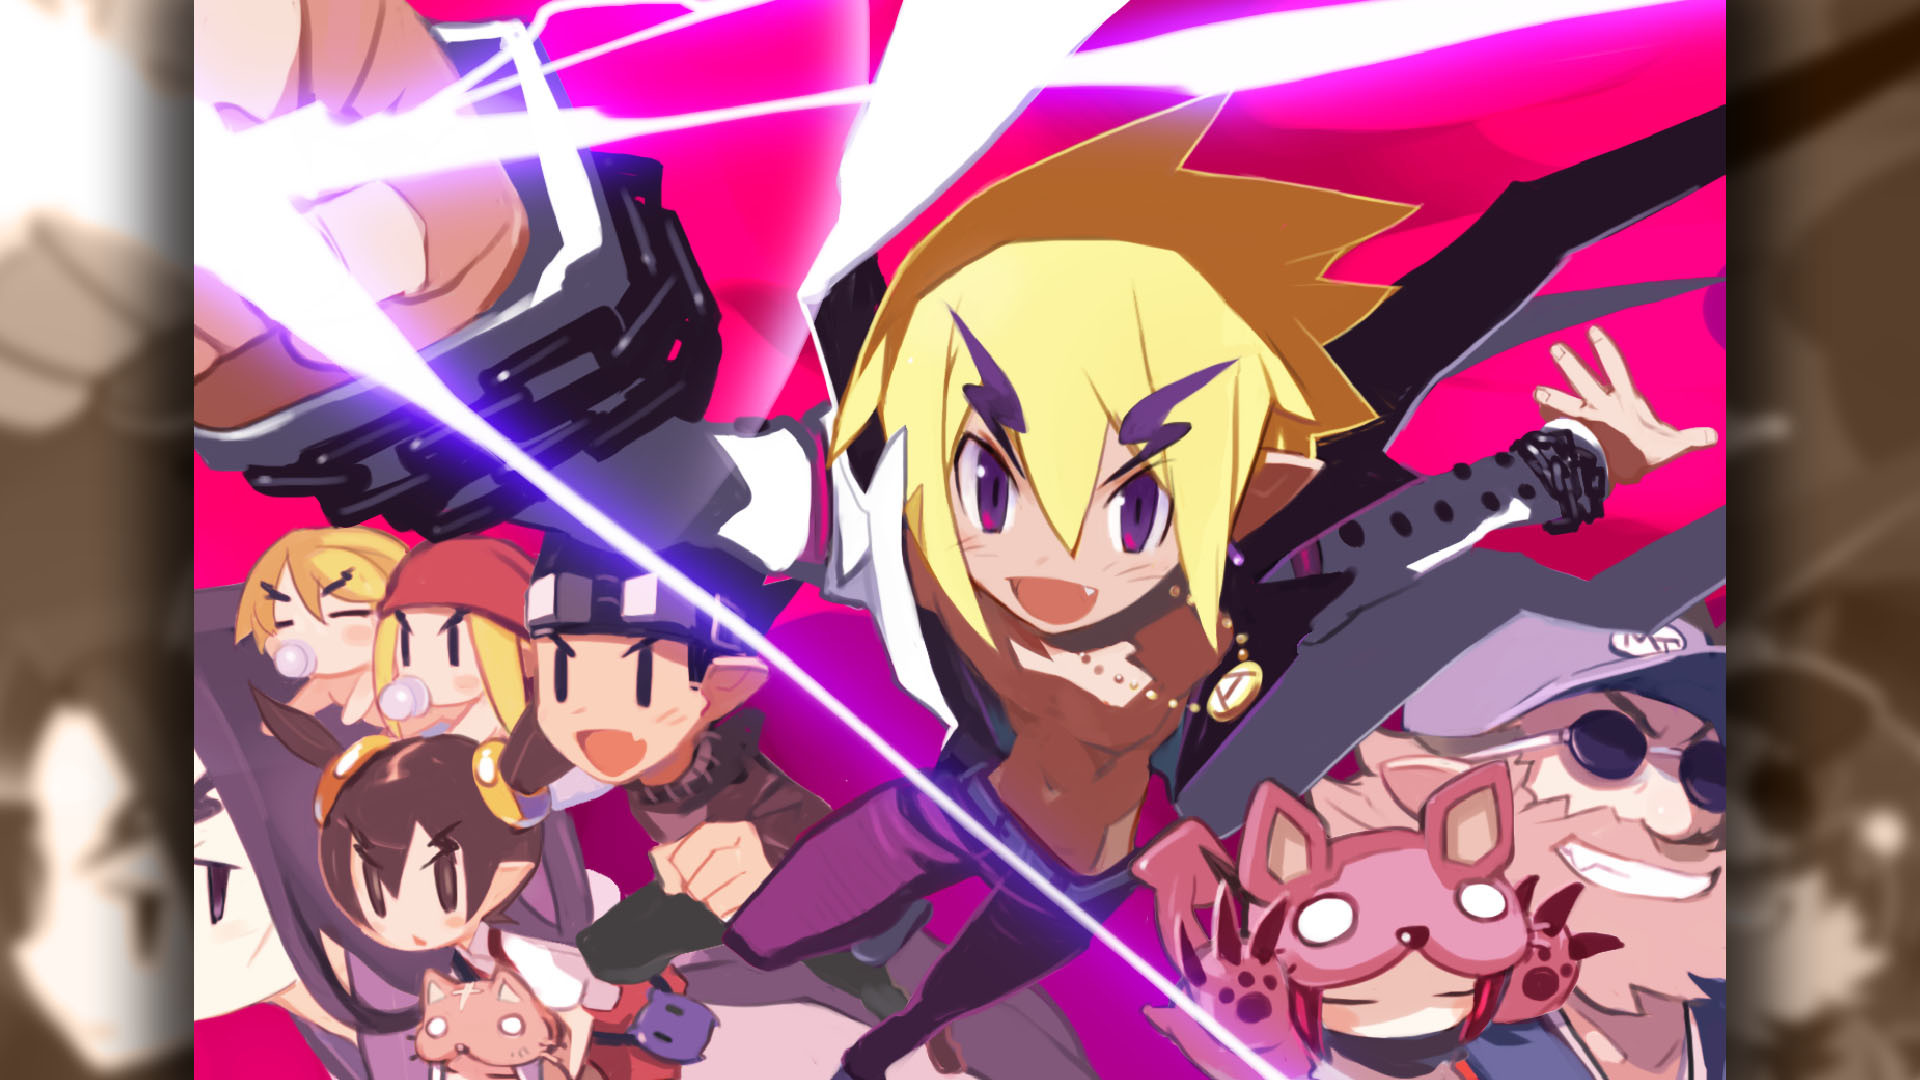 Res: 1920x1080, Disgaea 2 PC Wallpaper 008 – Axel